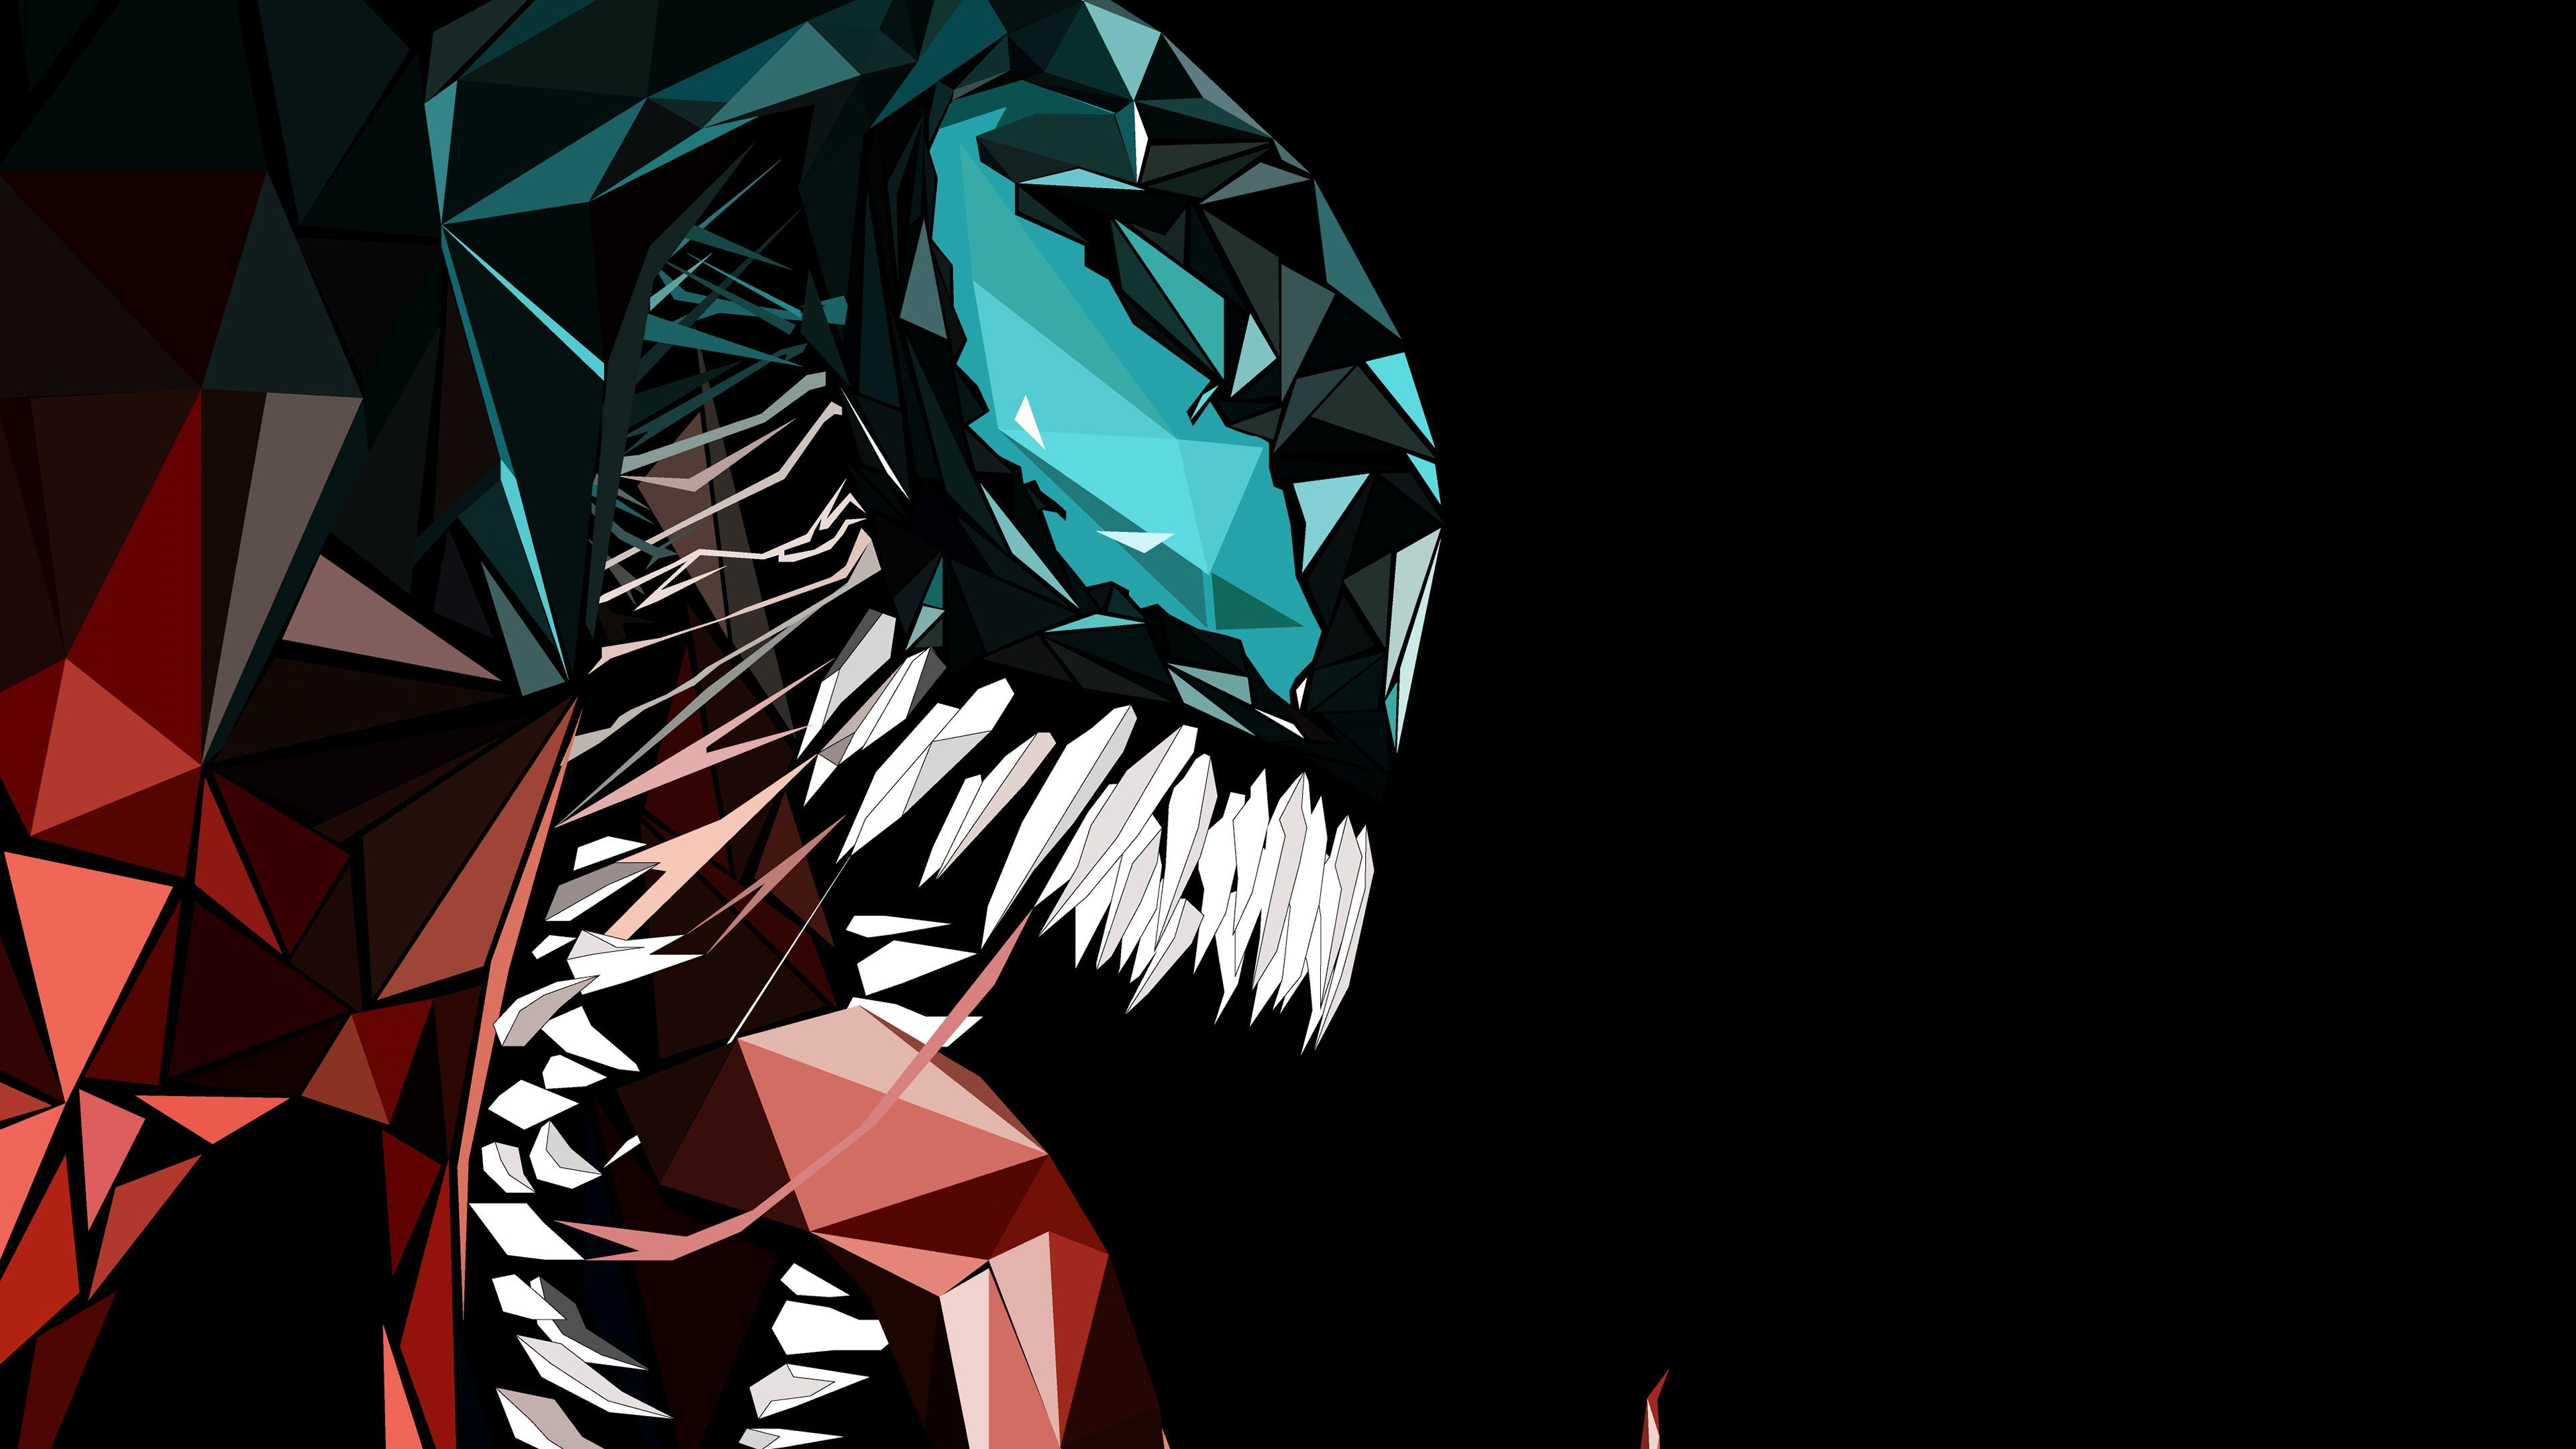 Res: 3840x2160, Venom Abstract 4k Venom Wallpapers Superheroes Wallpapers Hd